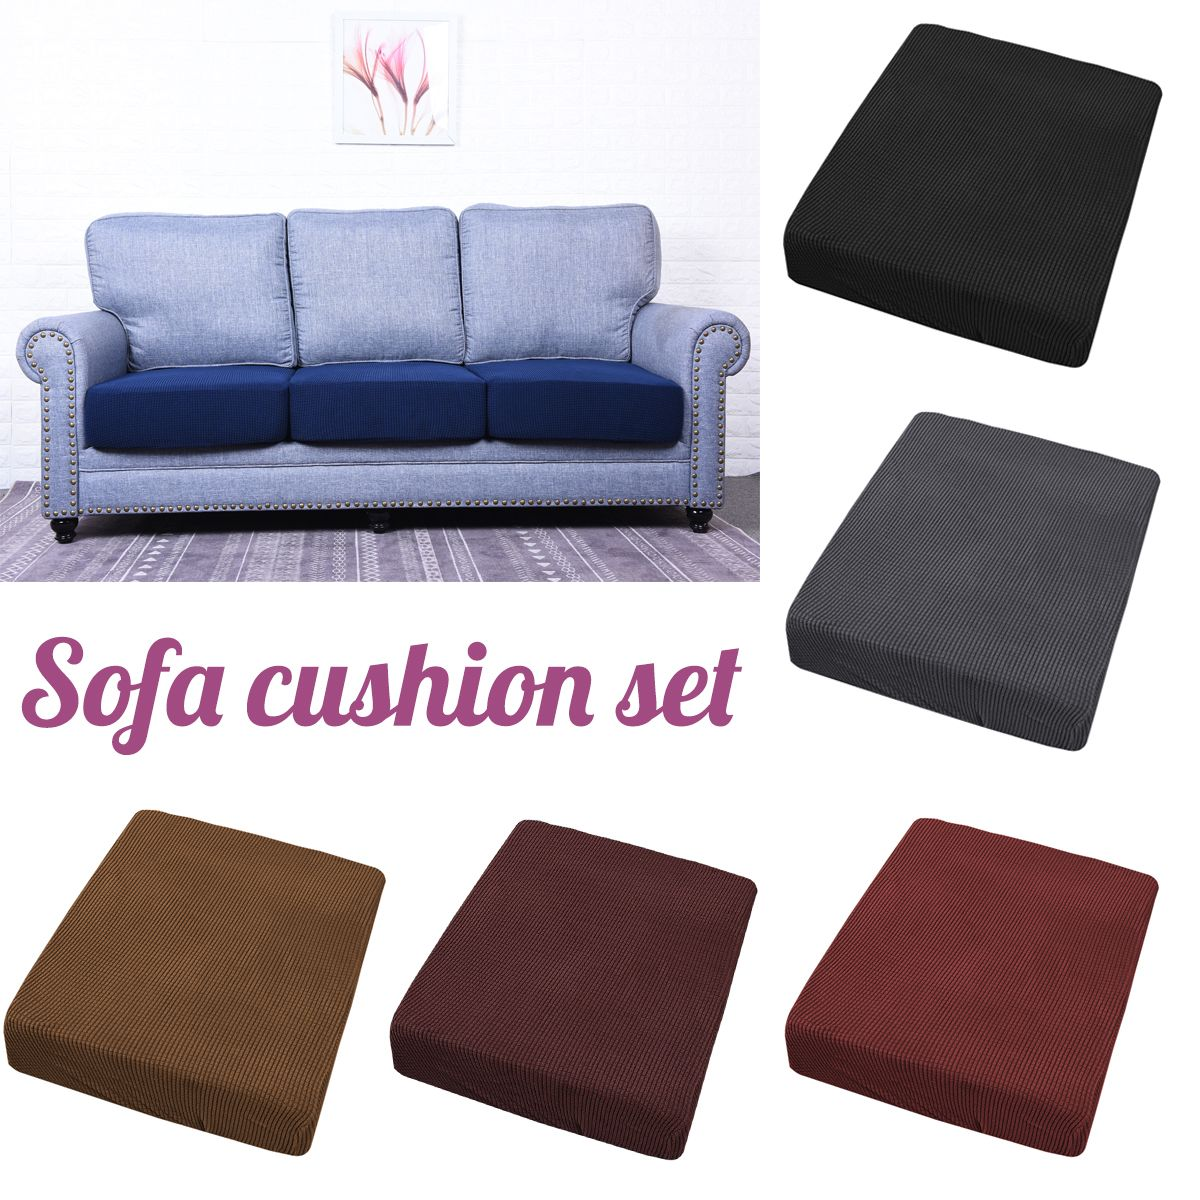 10 Sofa Cushion Covers Replacement Most Awesome As Well As Stunning Cushions On Sofa Seat Cushion Covers Sofa Seat Cushions